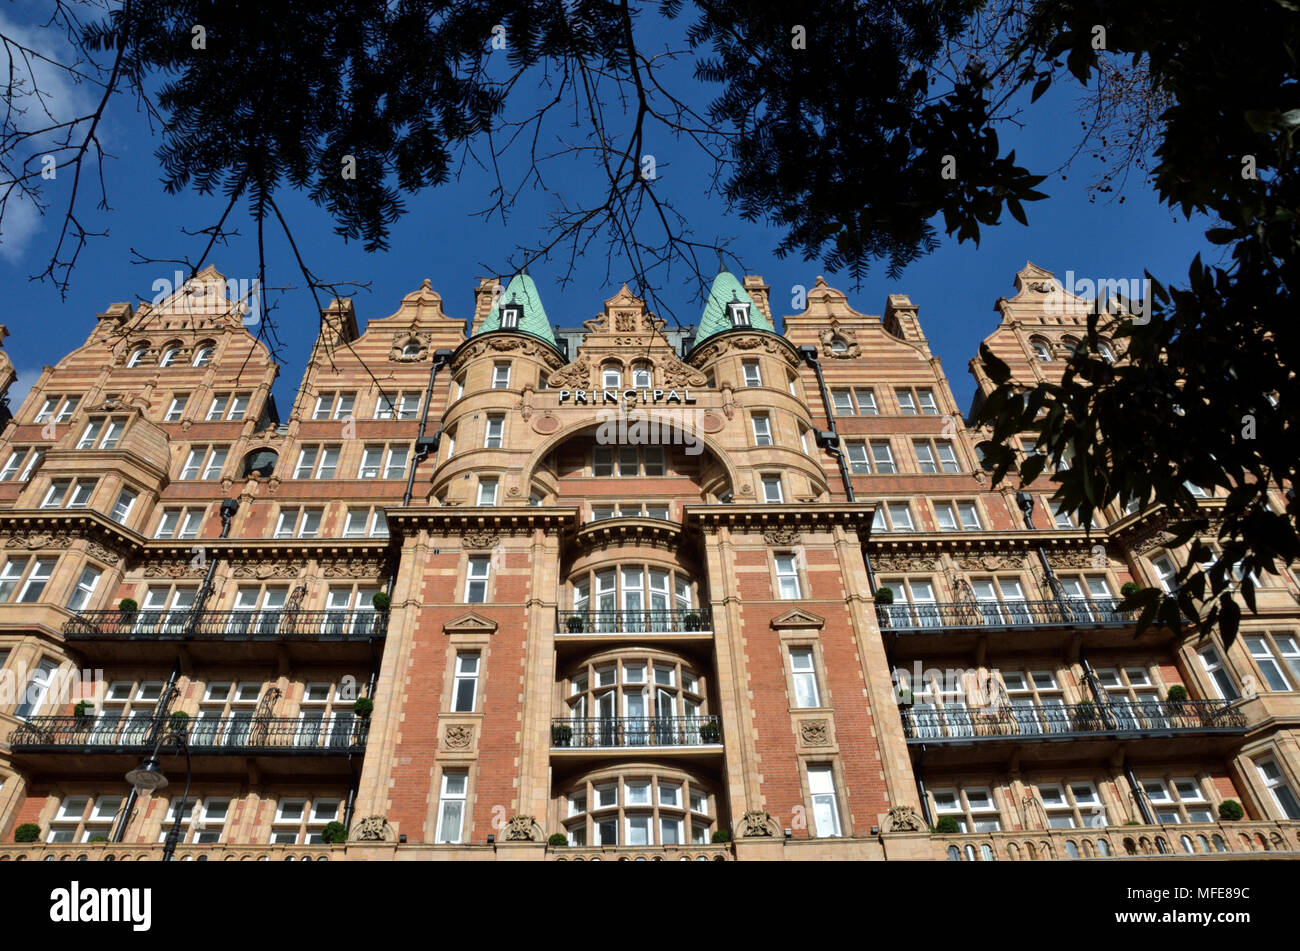 The Principal London Hotel in Russell Square, Bloomsbury, London, UK Stock Photo